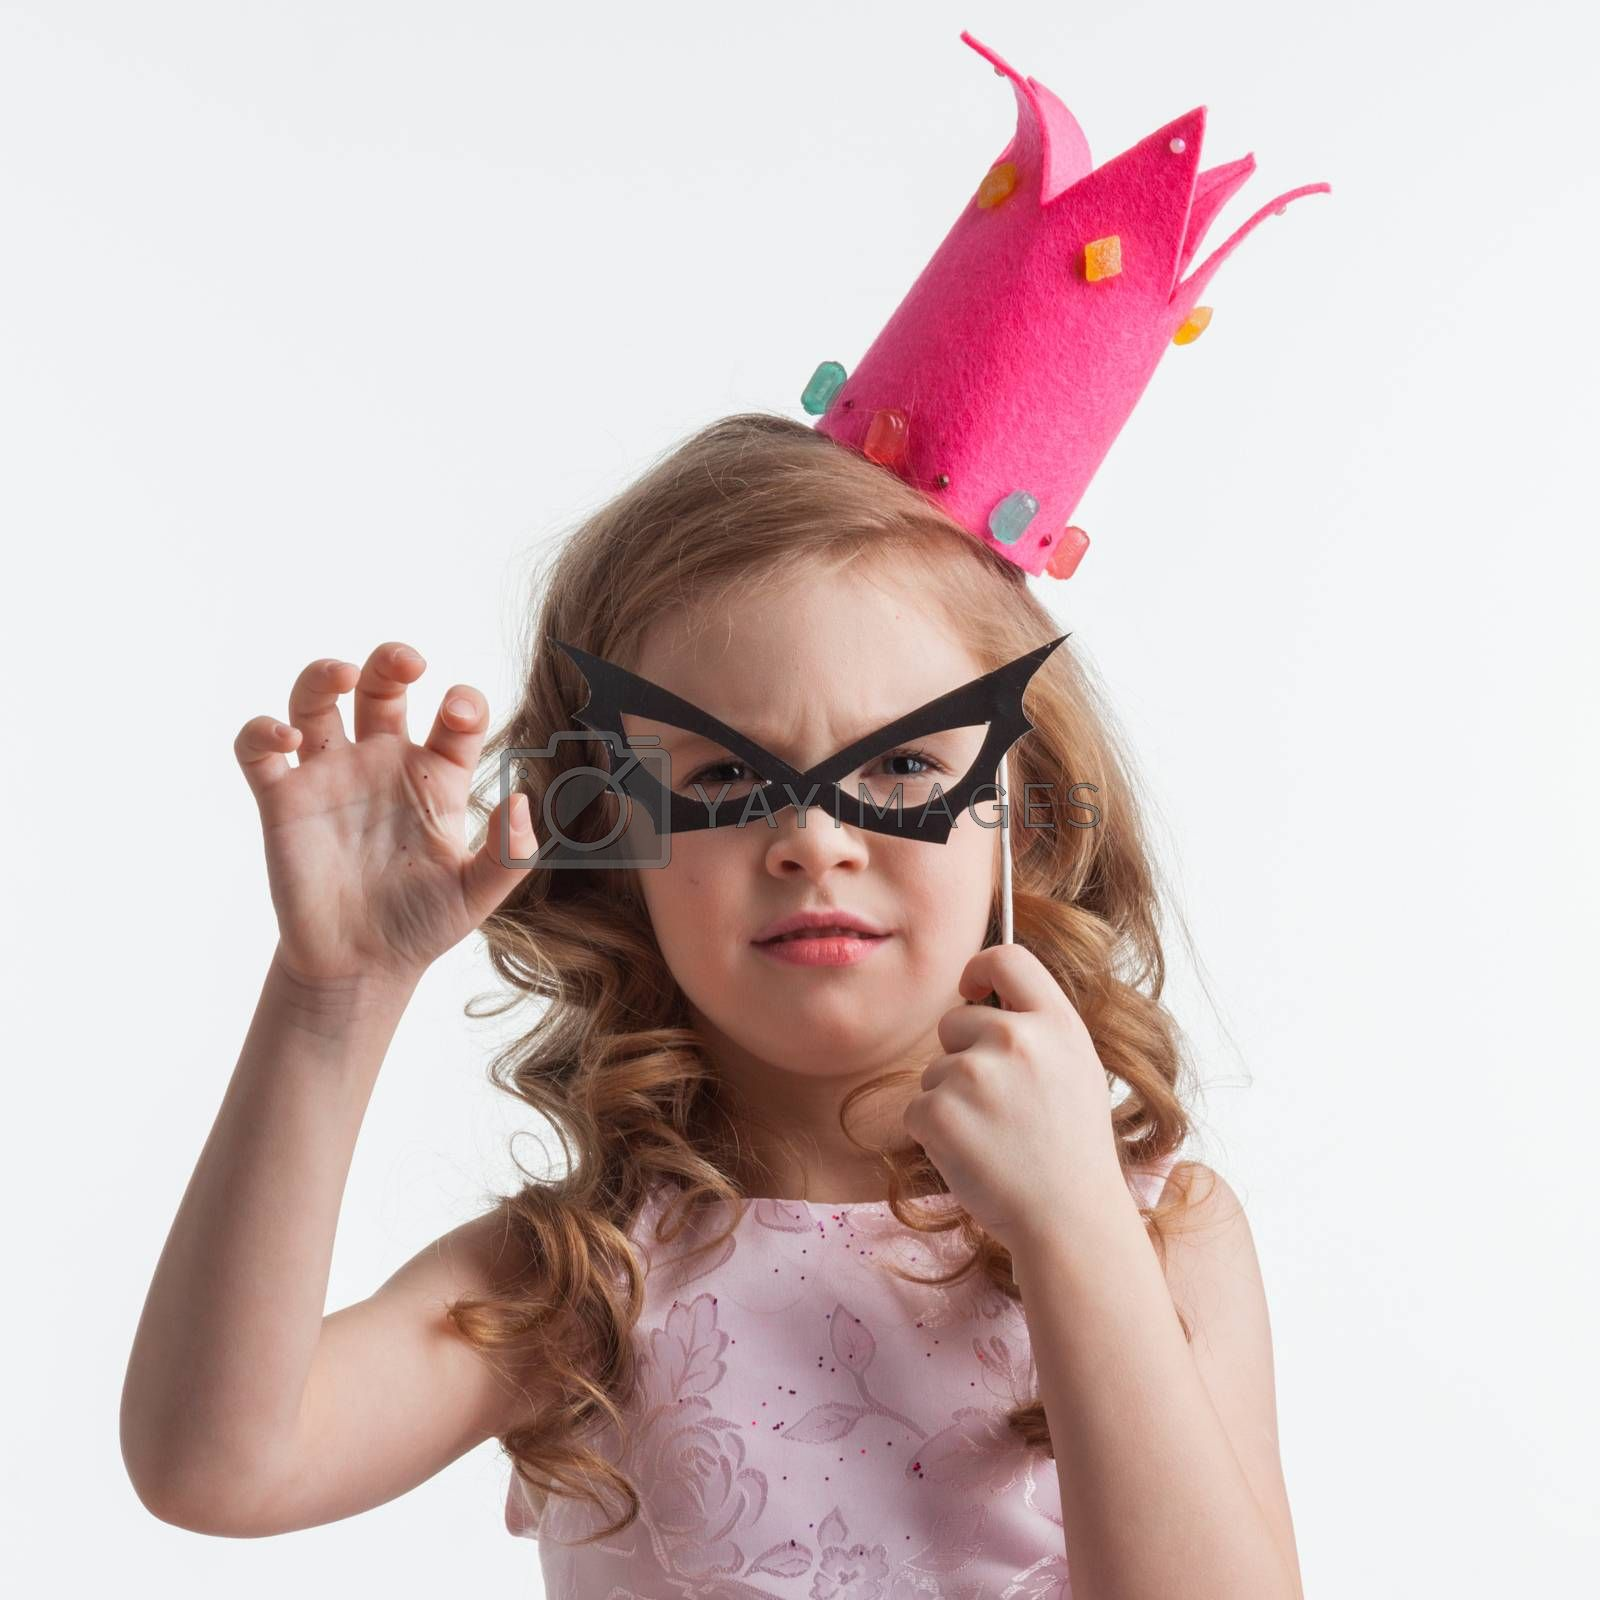 Beautiful little candy princess girl in crown and bat mask, on fake glasses, halloween costume concept